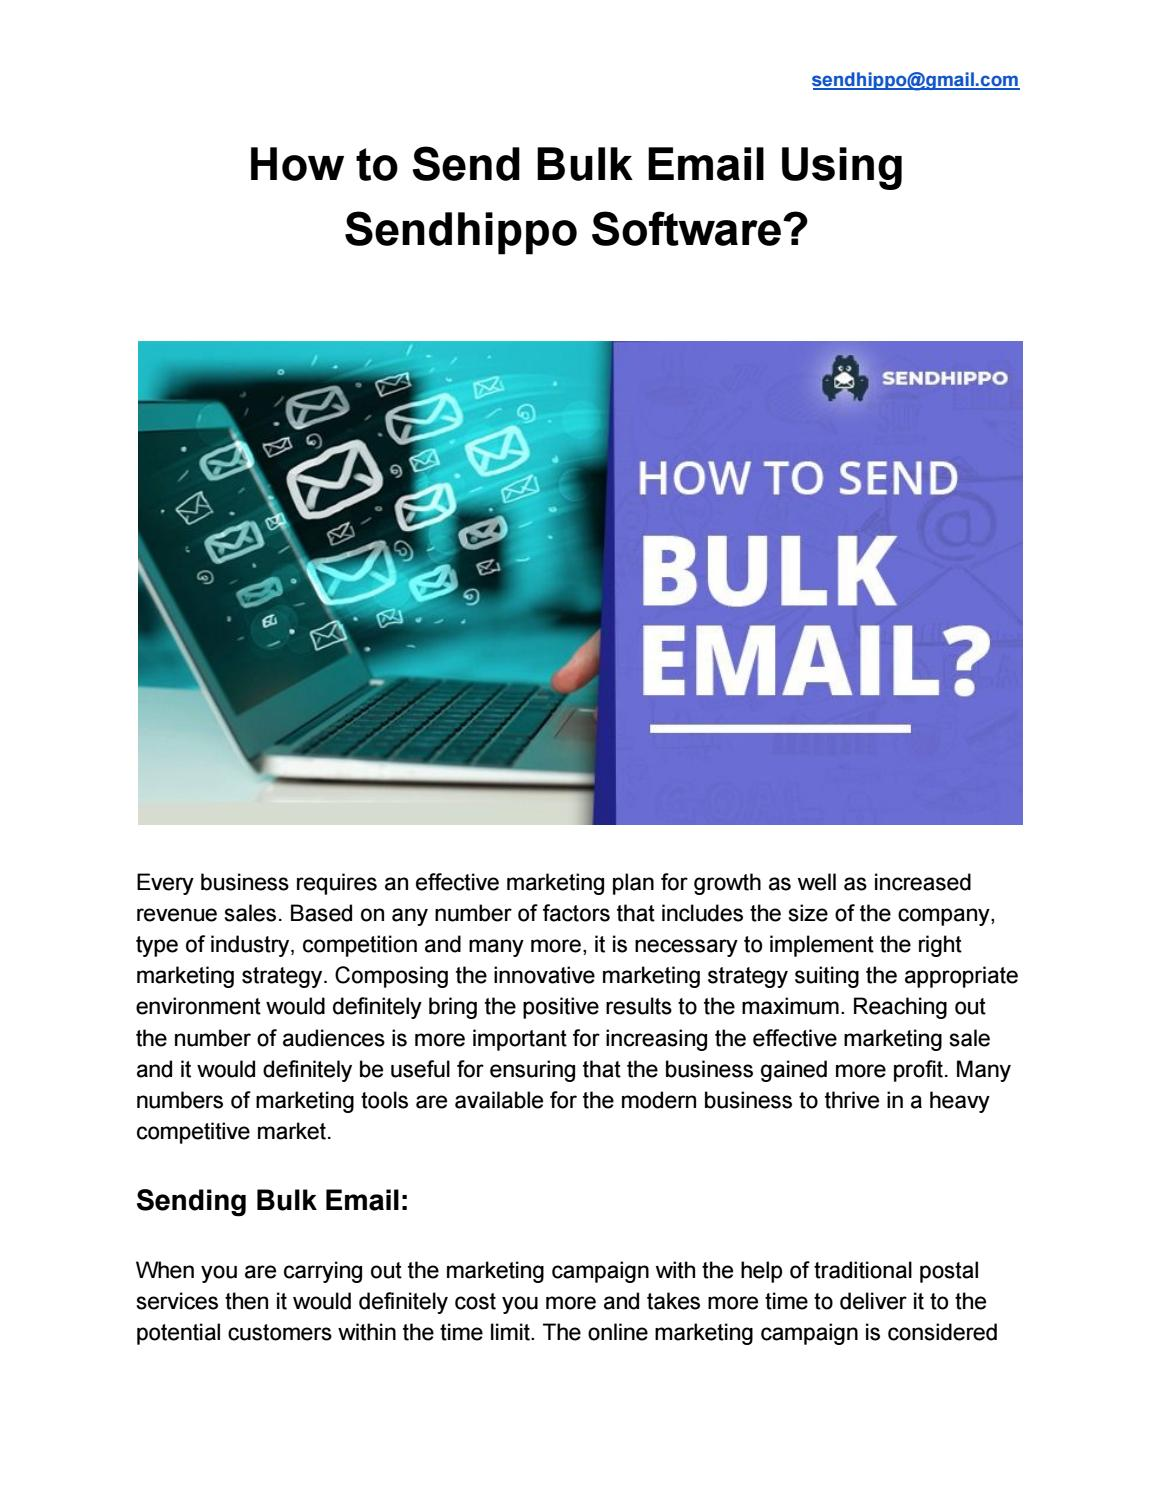 How to Send Bulk Email Using Sendhippo Software? by